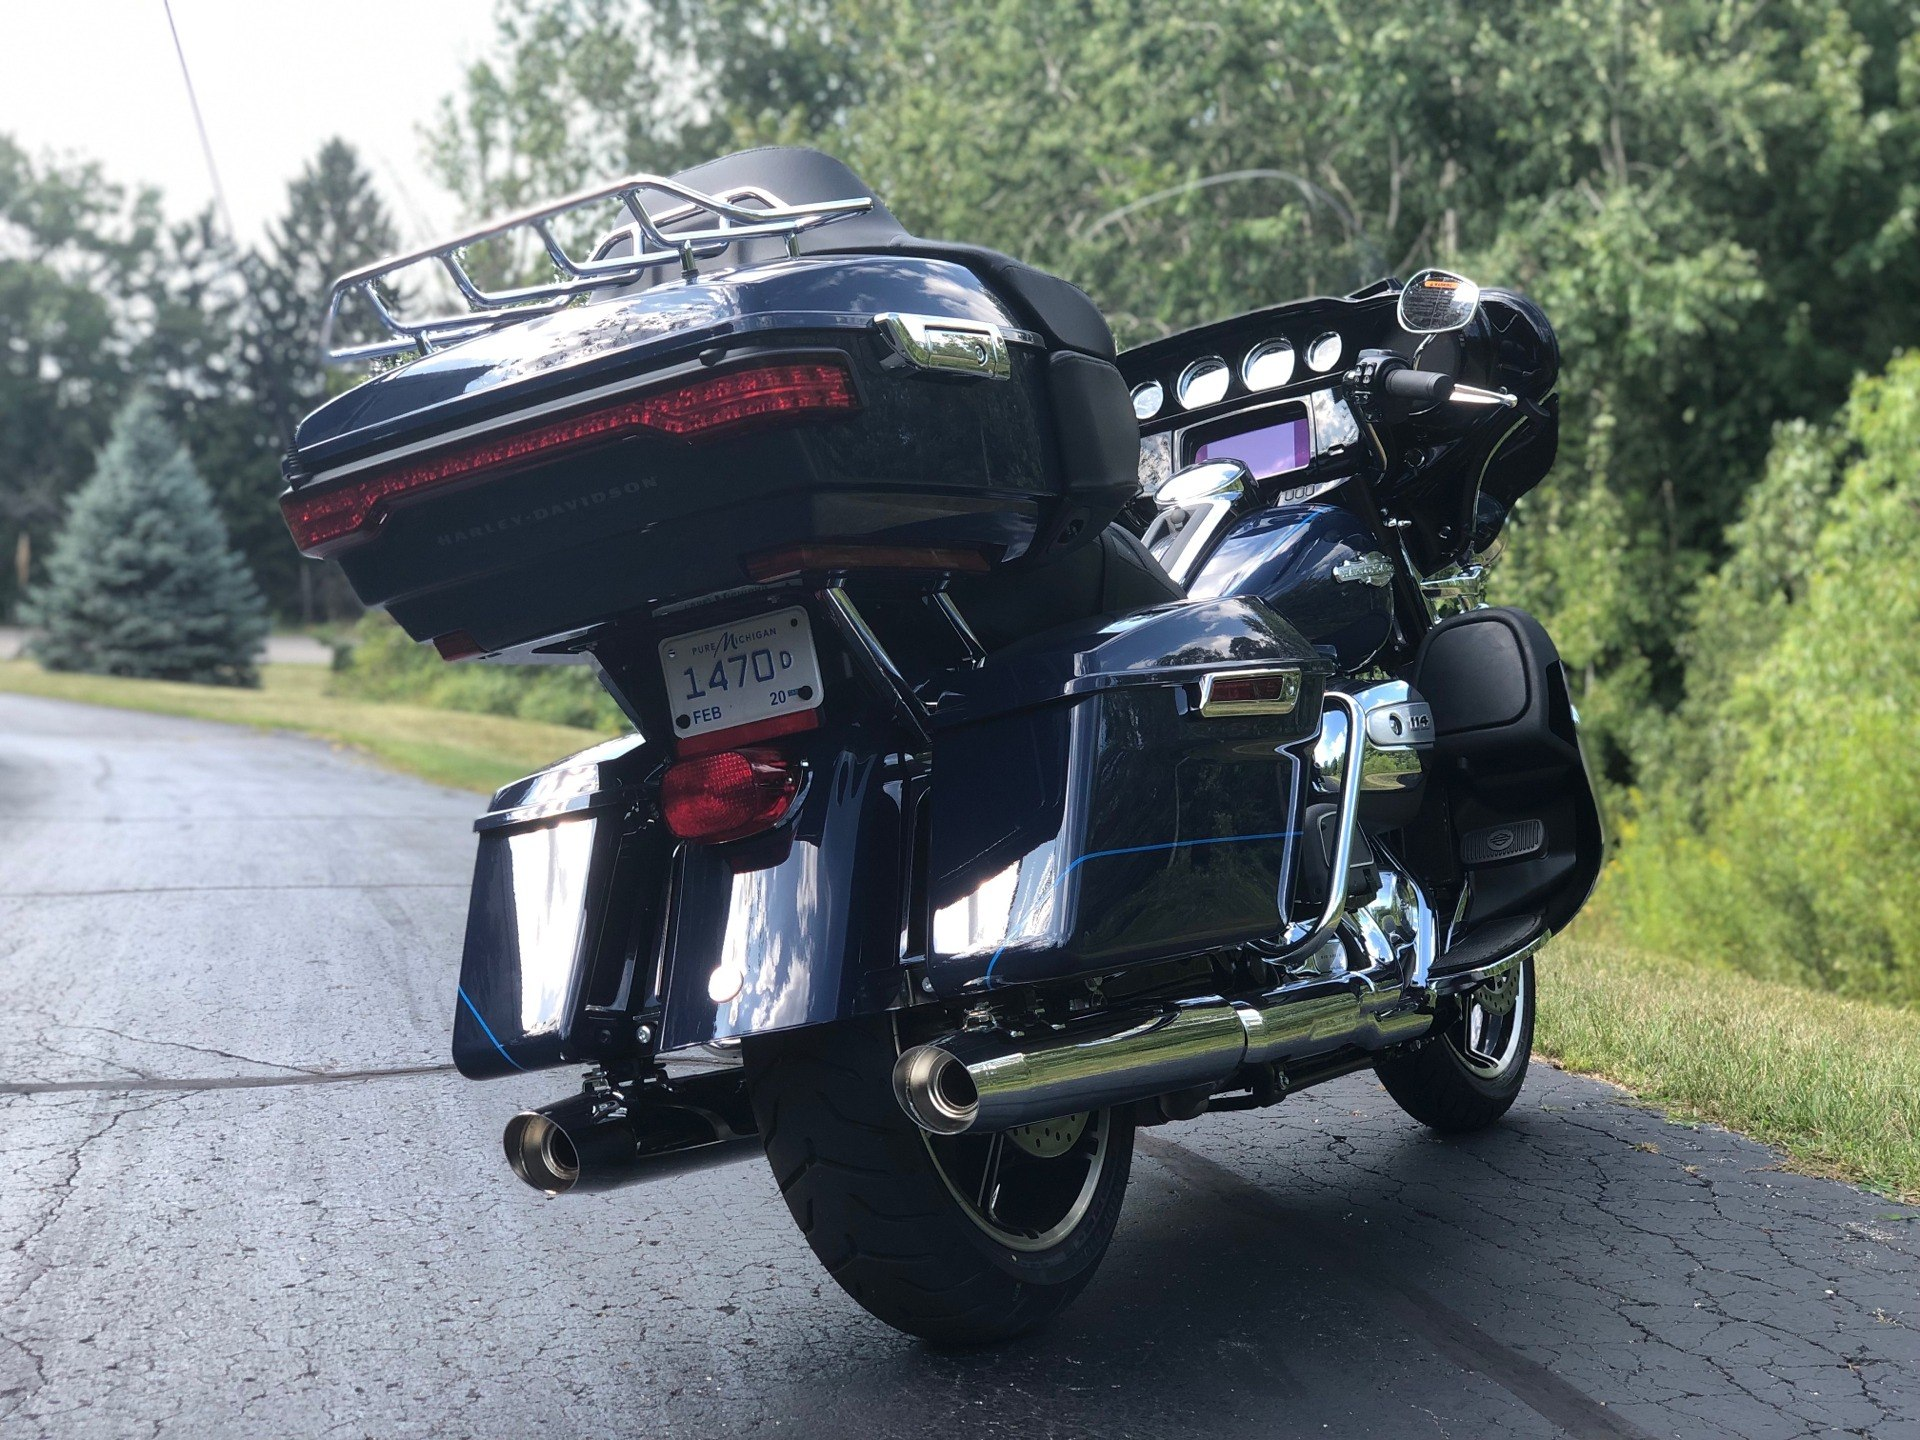 2020 Harley-Davidson Electra Glide Ultra Limited in Portage, Michigan - Photo 9